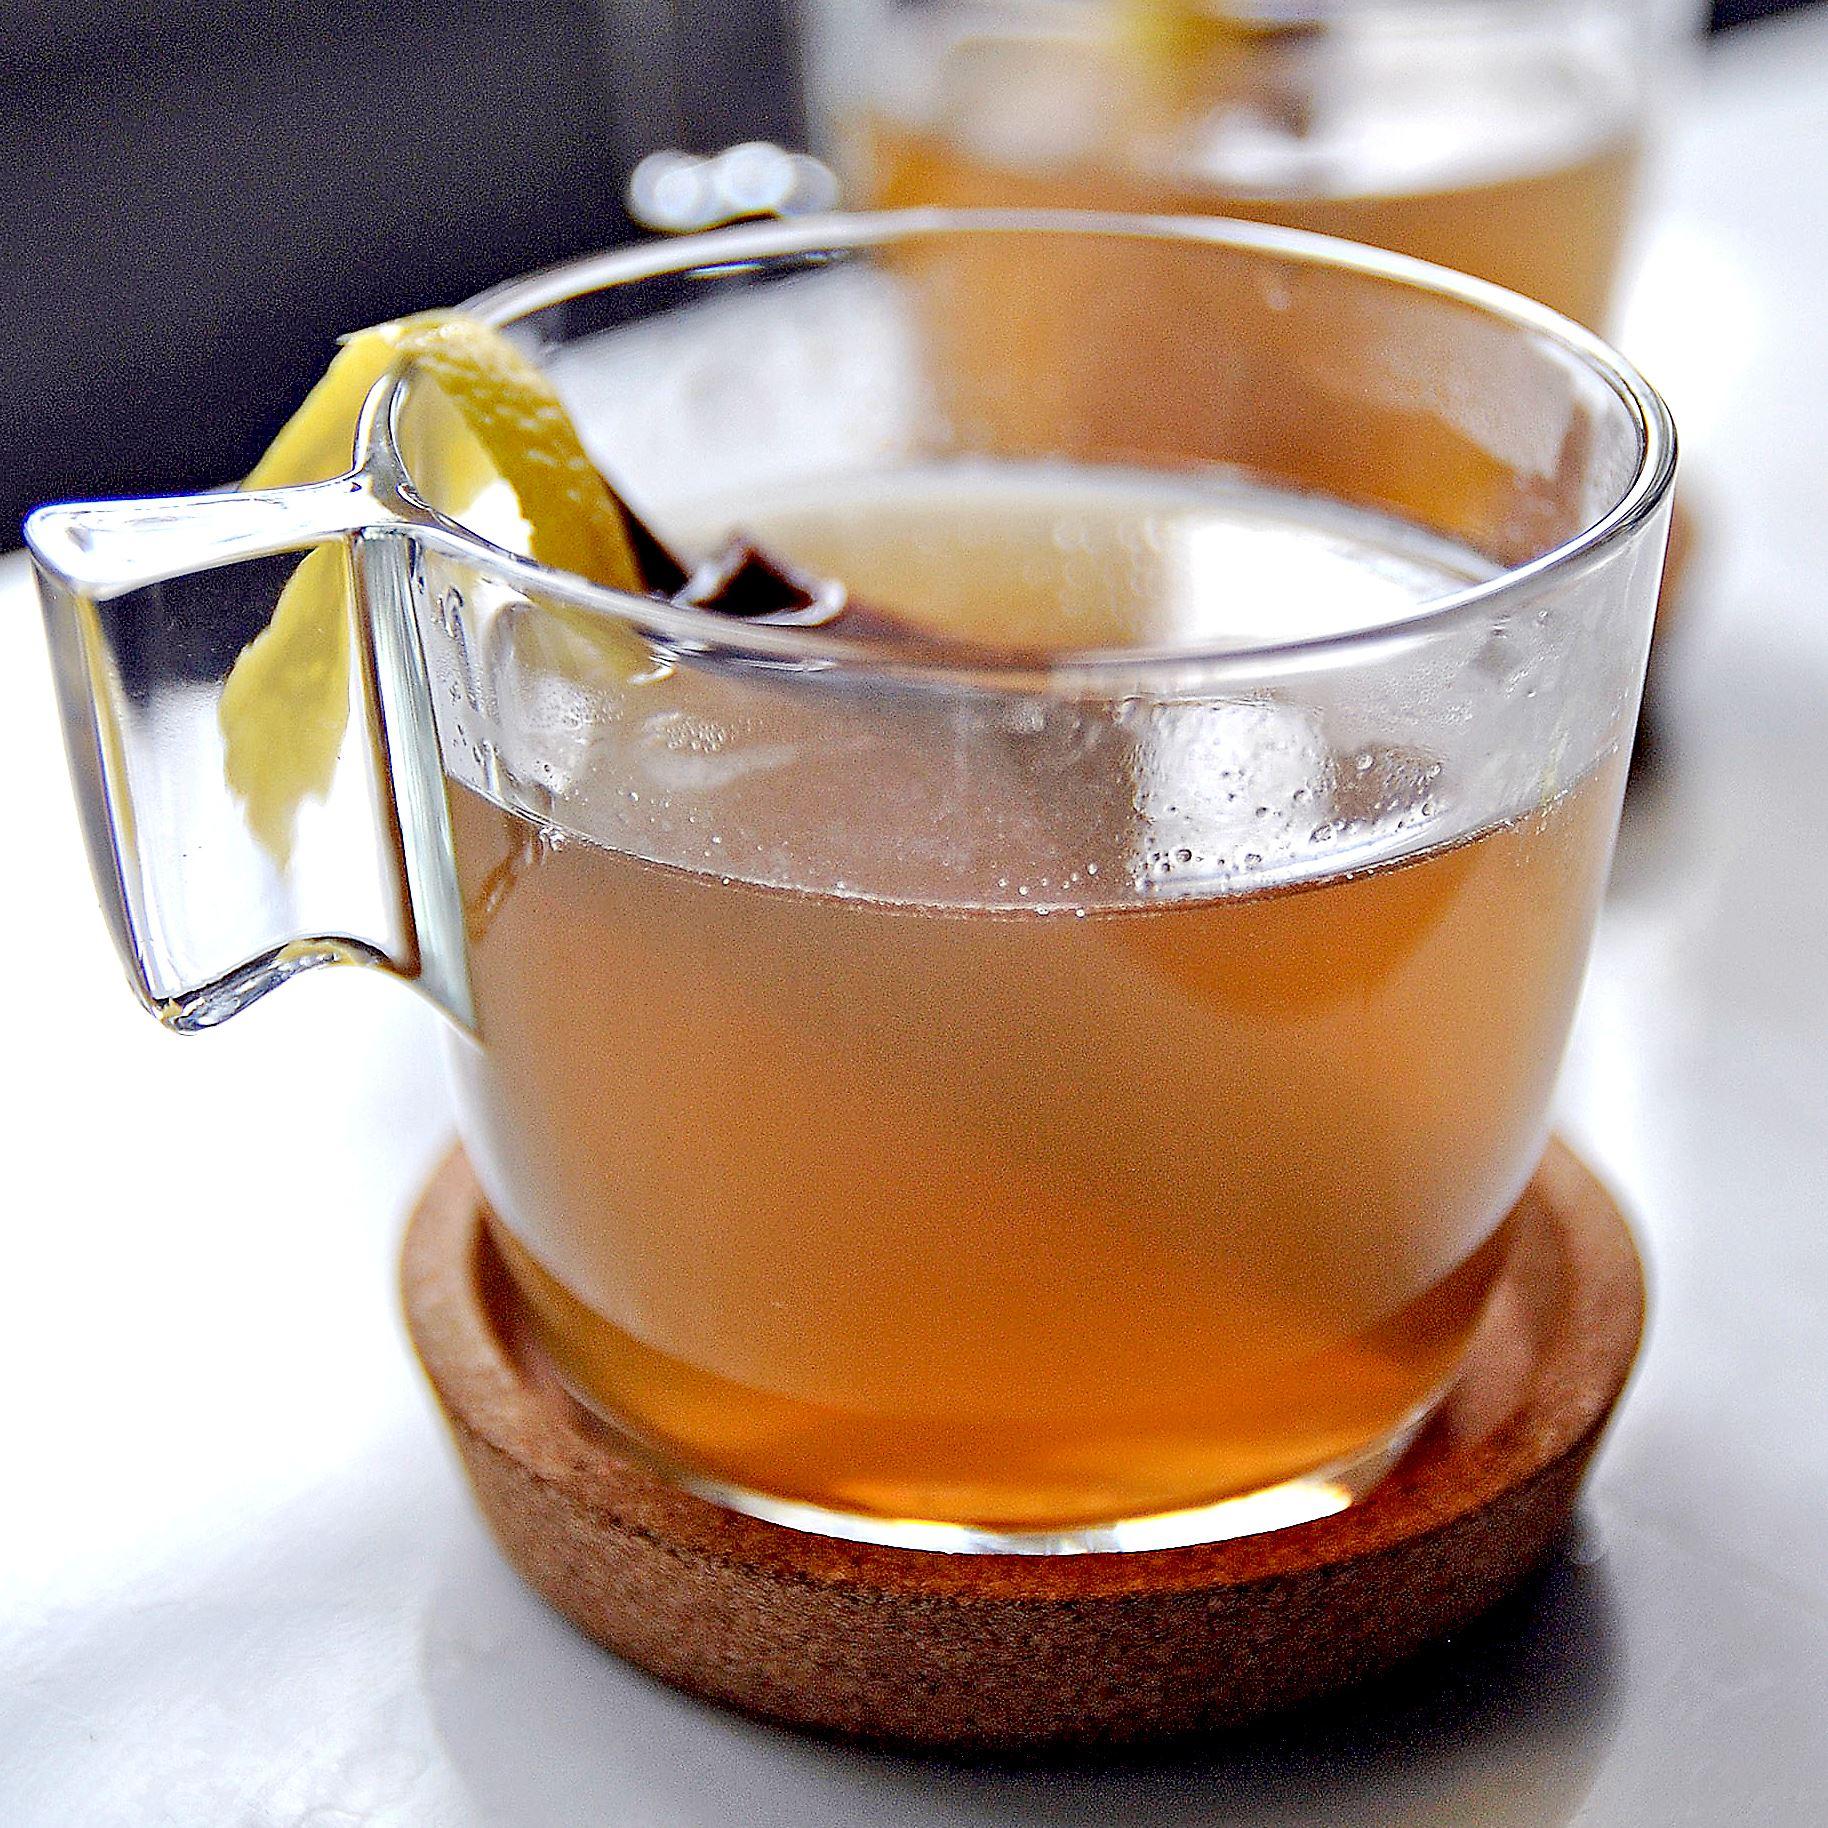 letseat0123-food-02-1 Honey-Bourbon Toddy